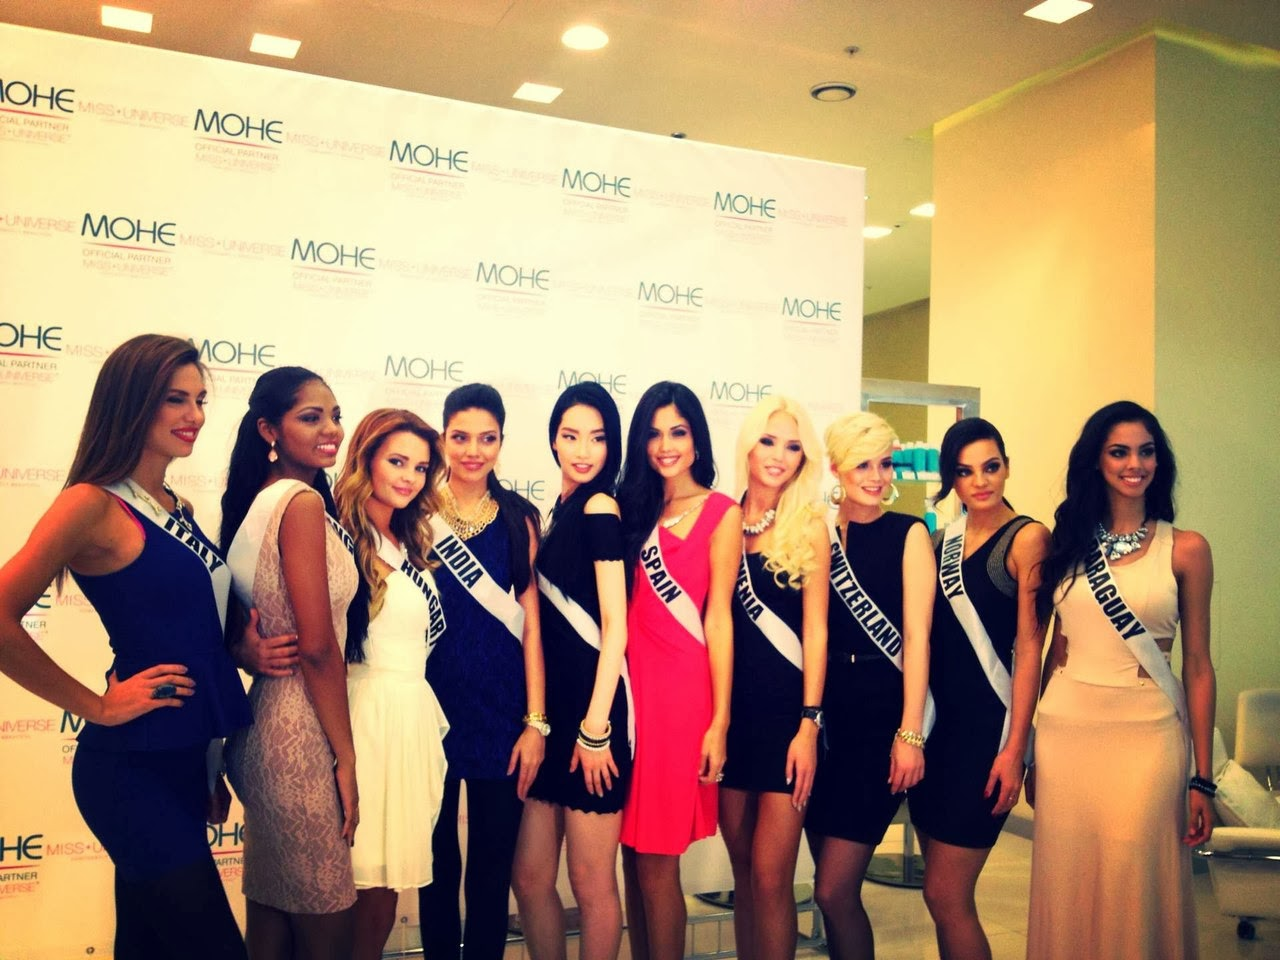 30th october 2013 by herb brasil labels miss universe 2013 coverage